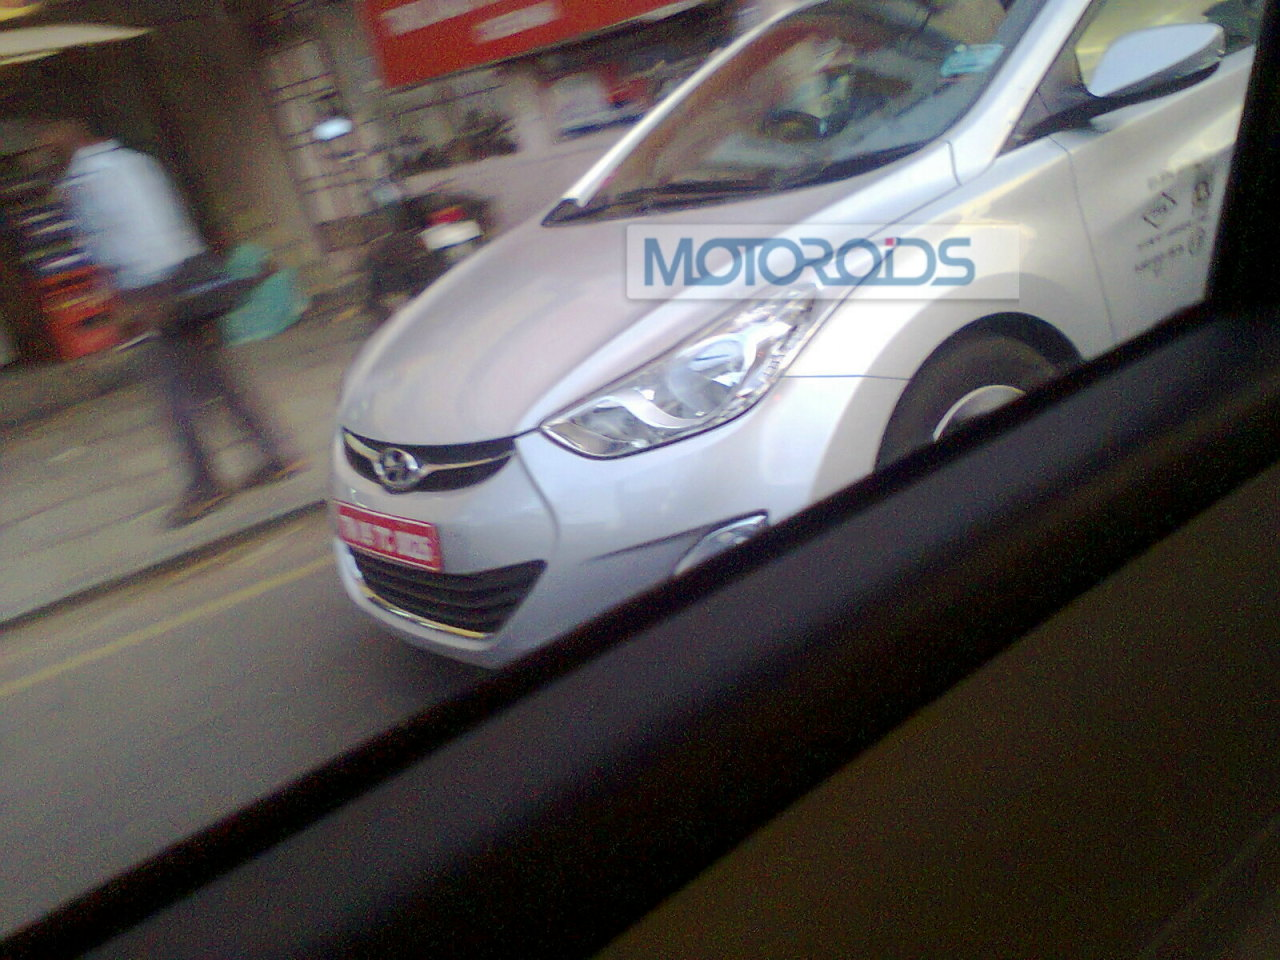 SPIED: All new Hyundai Elantra. Launch in August